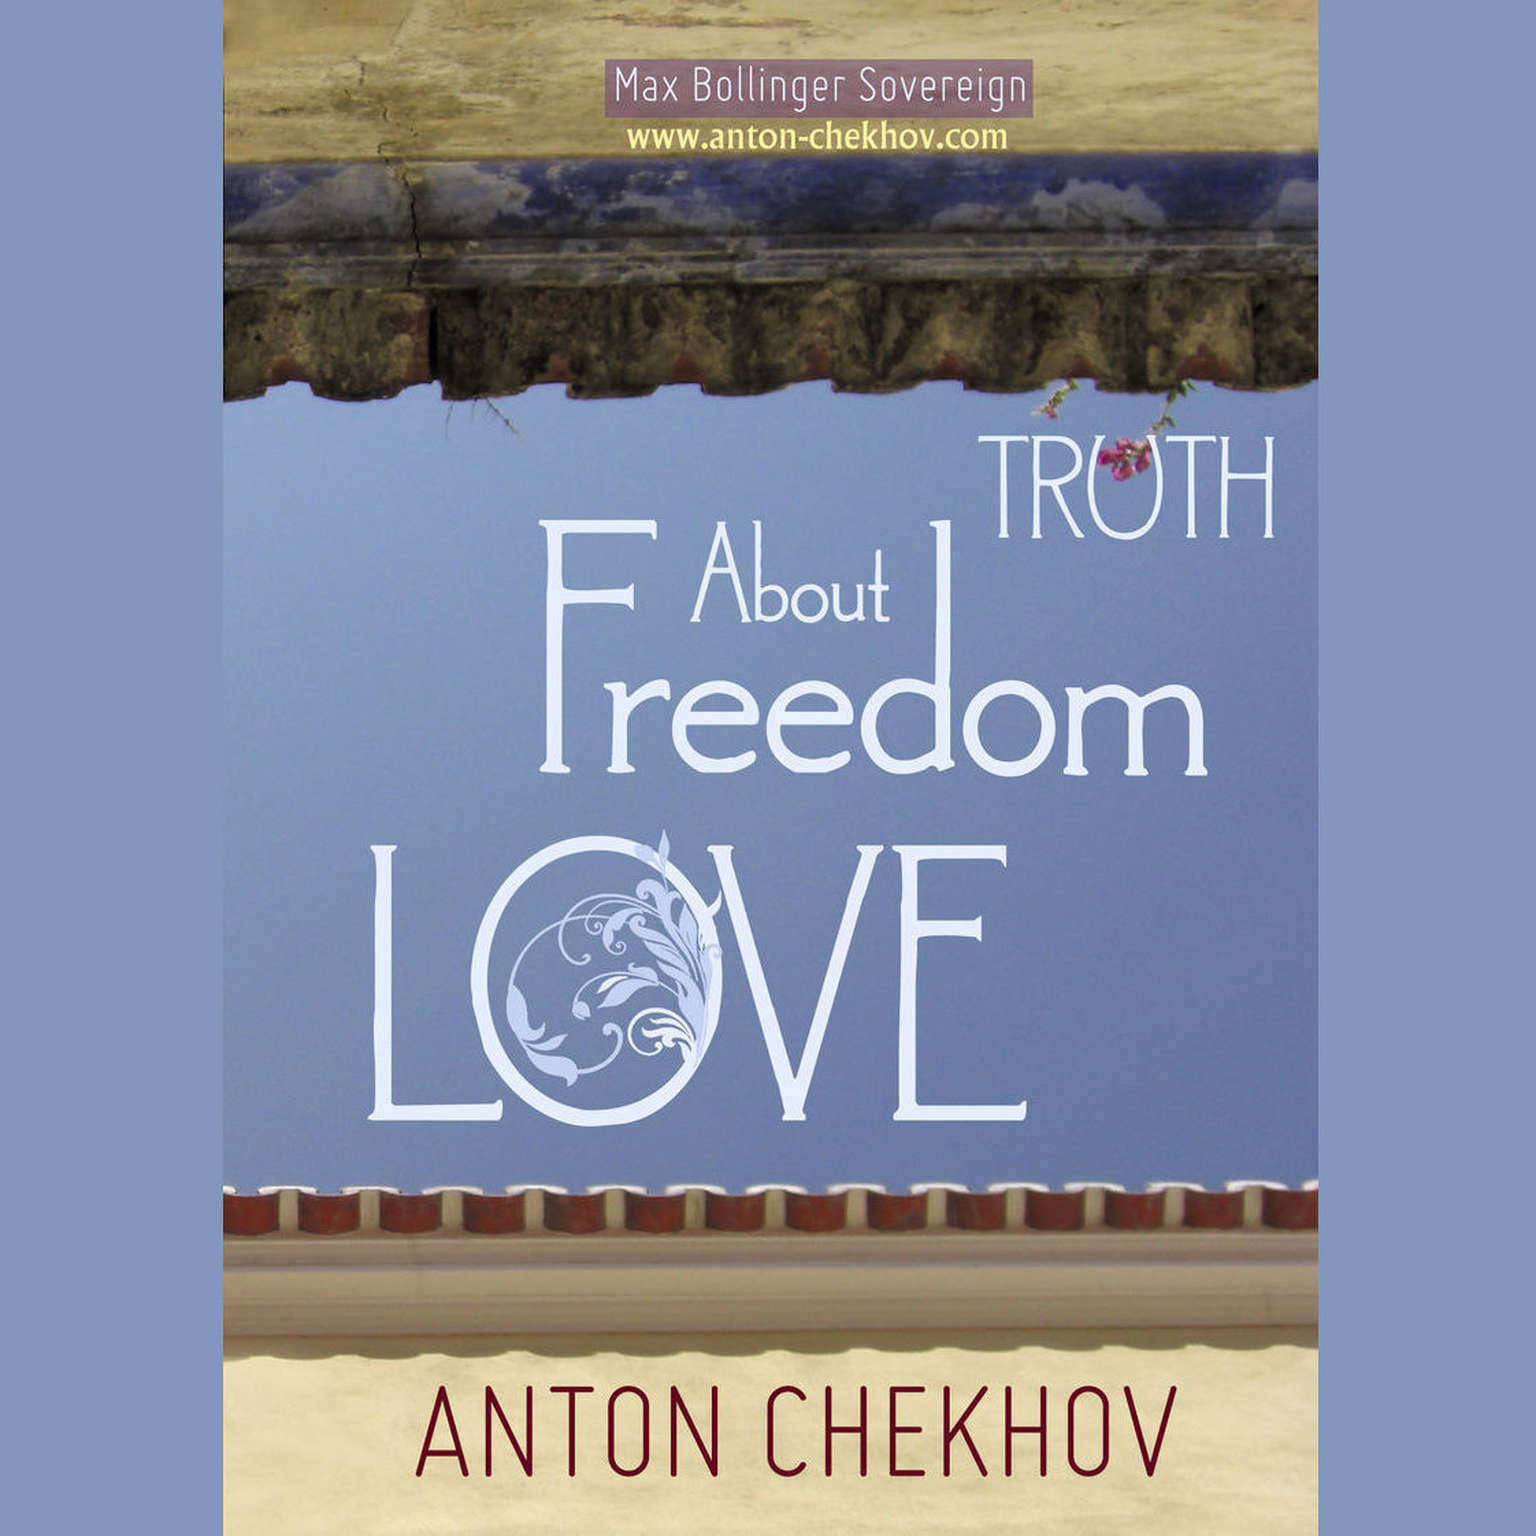 Printable Short Stories by Anton Chekhov Volume 3: About Truth, Freedom and Love Audiobook Cover Art